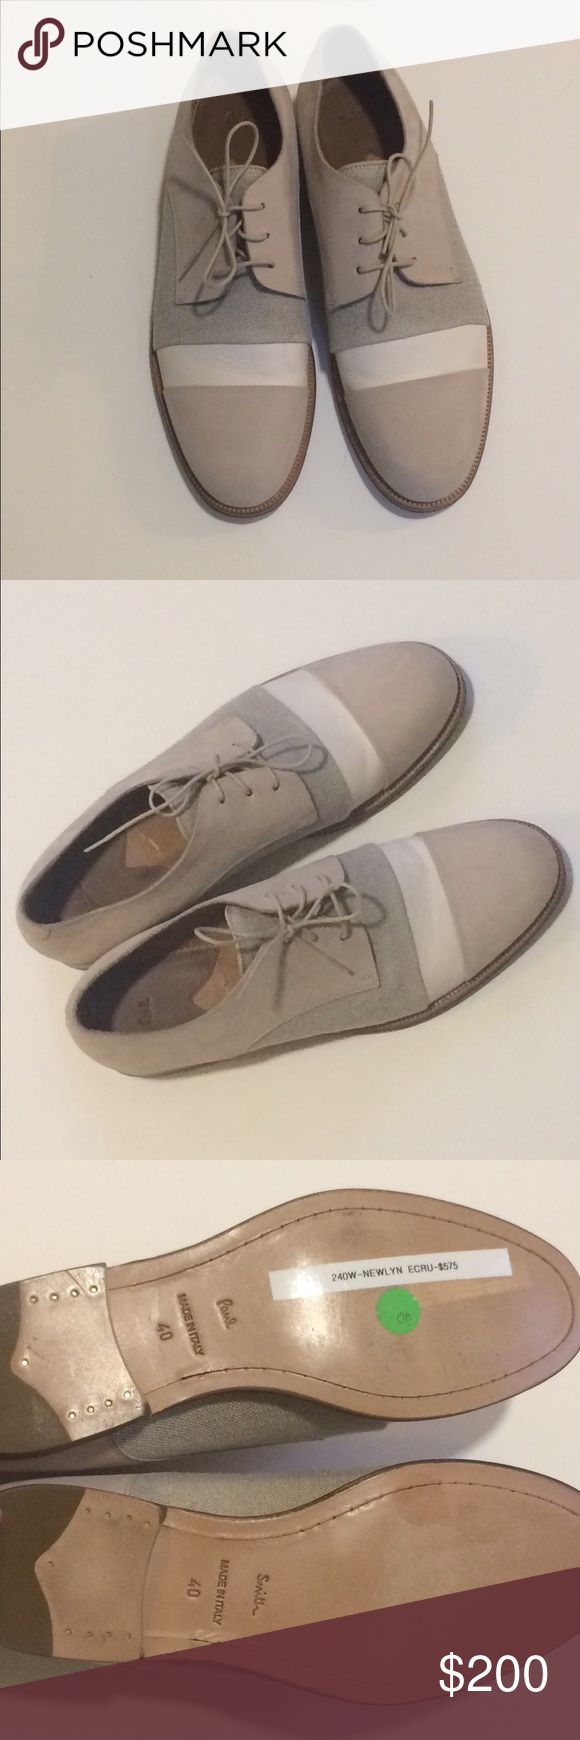 *NWT* Paul Smith Nubuck & Linen Derby Shoes *NWT* Paul Smith Ecru Nubuck & Linen Derby Shoes. Size 40. Pls be advised: They run a bit narrow through the widest part of your foot (where band is). Leather soles. A classic, cool shoe for the warmer weather. Anthropologie Shoes Flats & Loafers